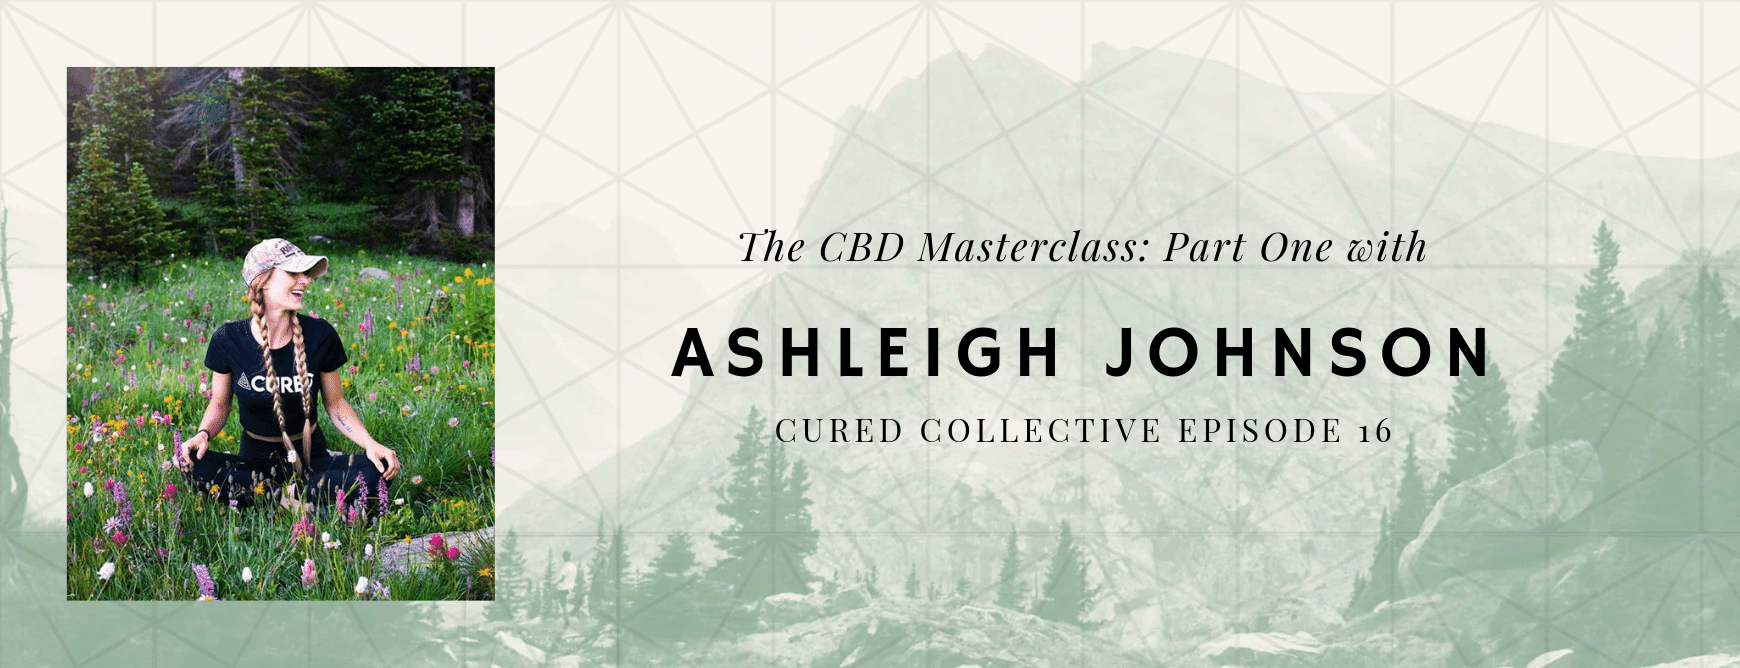 Cured Collective CBD Masterclass with Ashleigh Johnson